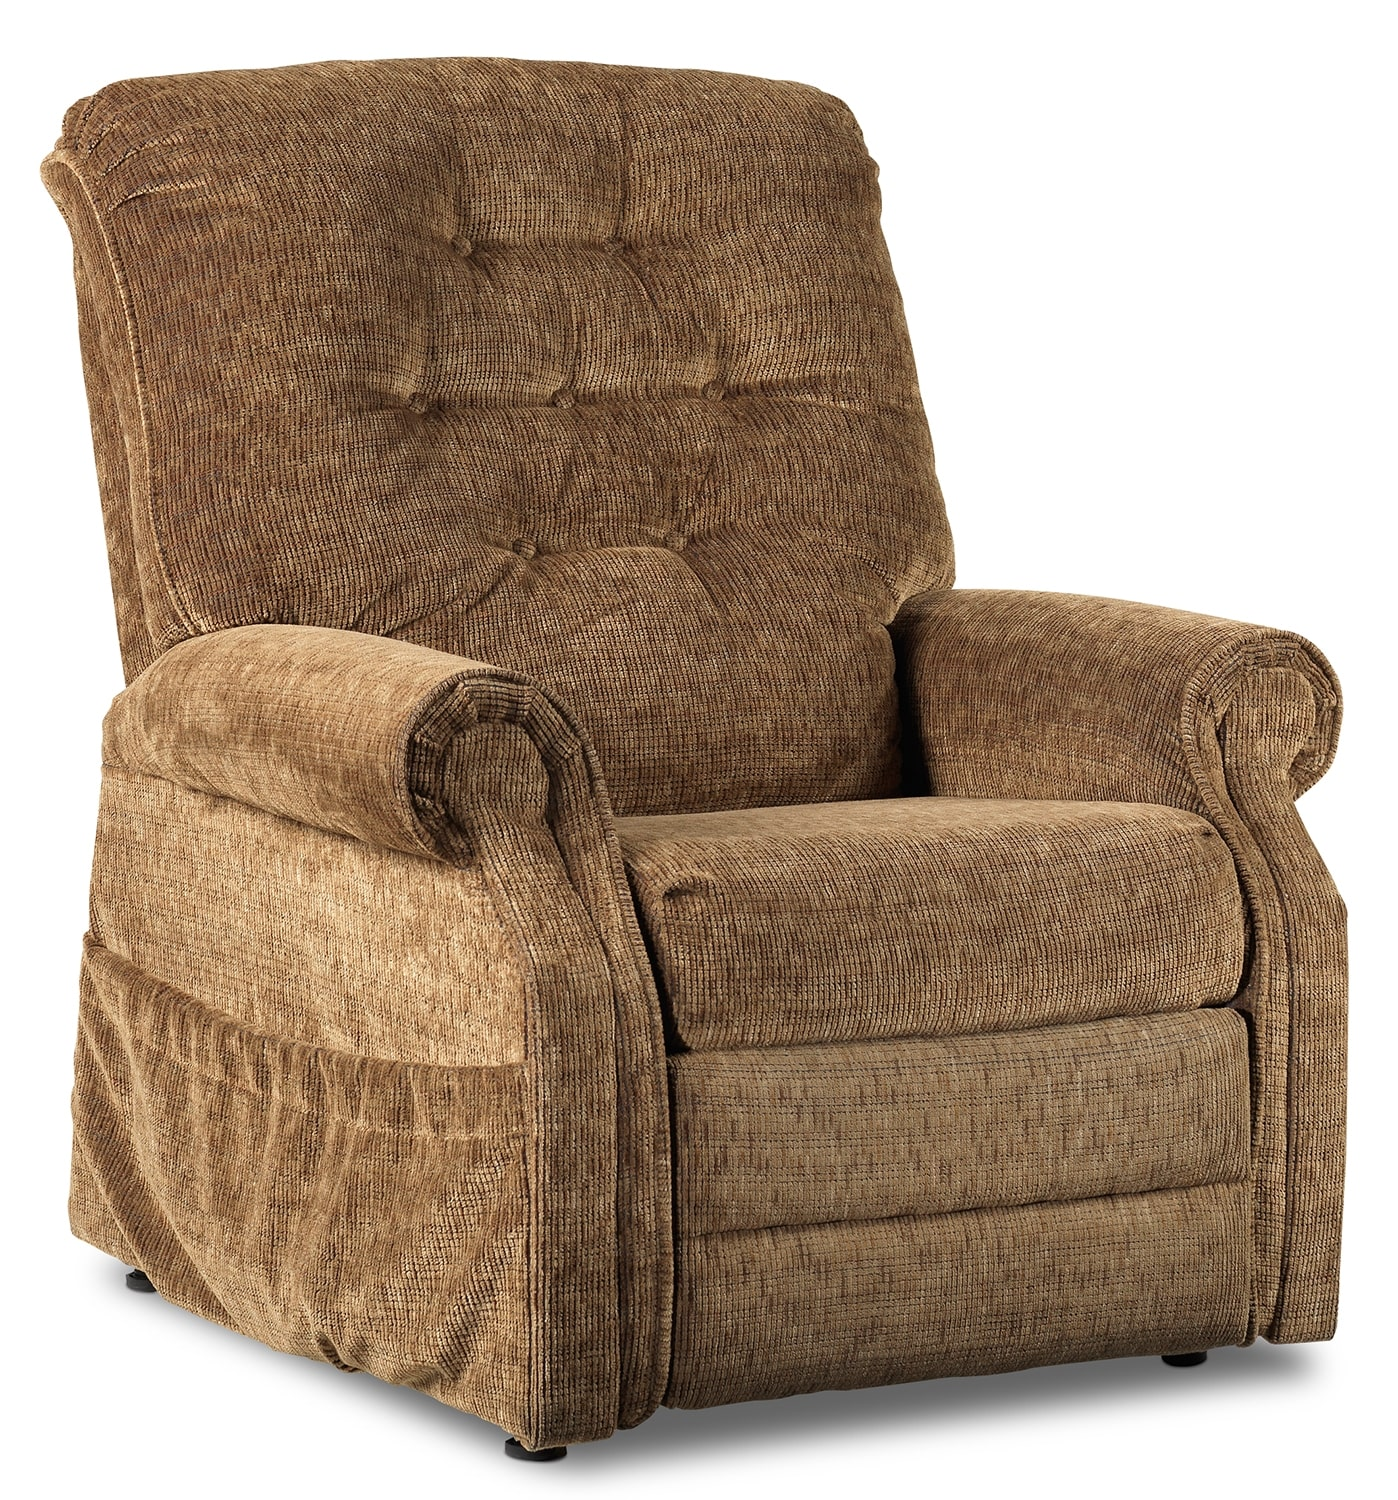 International Furniture Kitchener Boost Power Lift Recliner Light Brown Leons